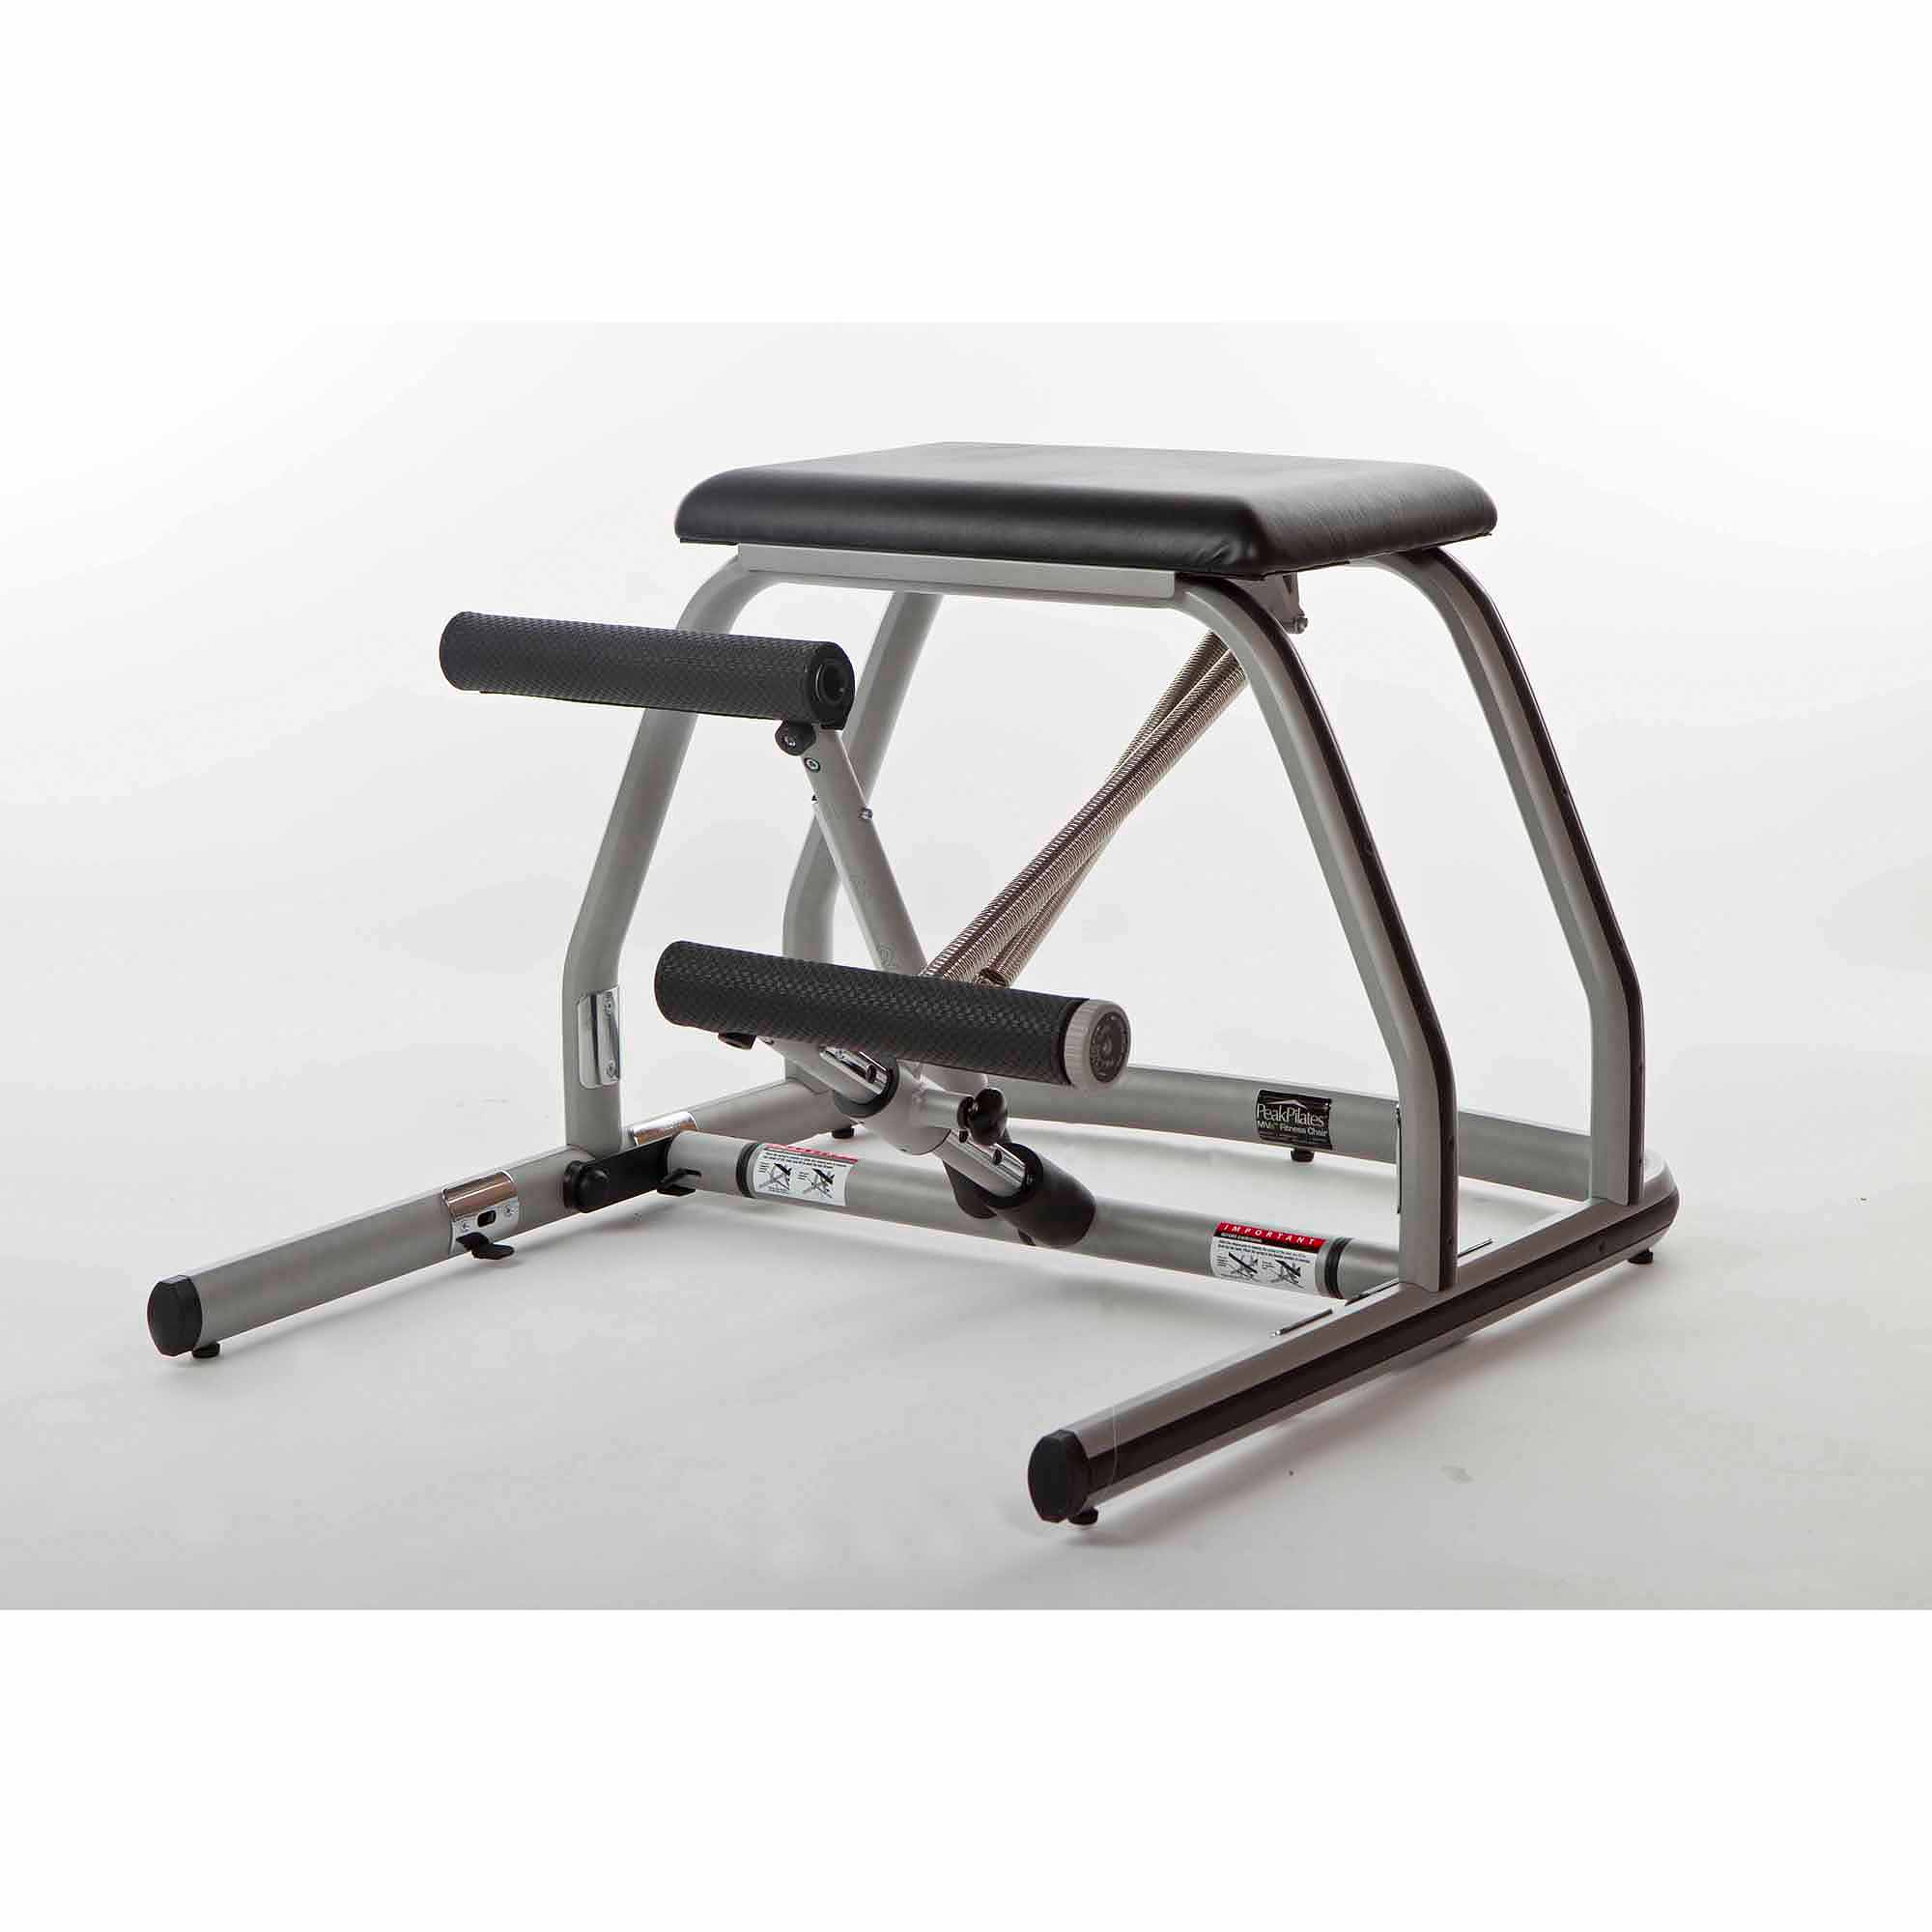 Peak Pilates MVe Fitness Chair with Split-Pedal